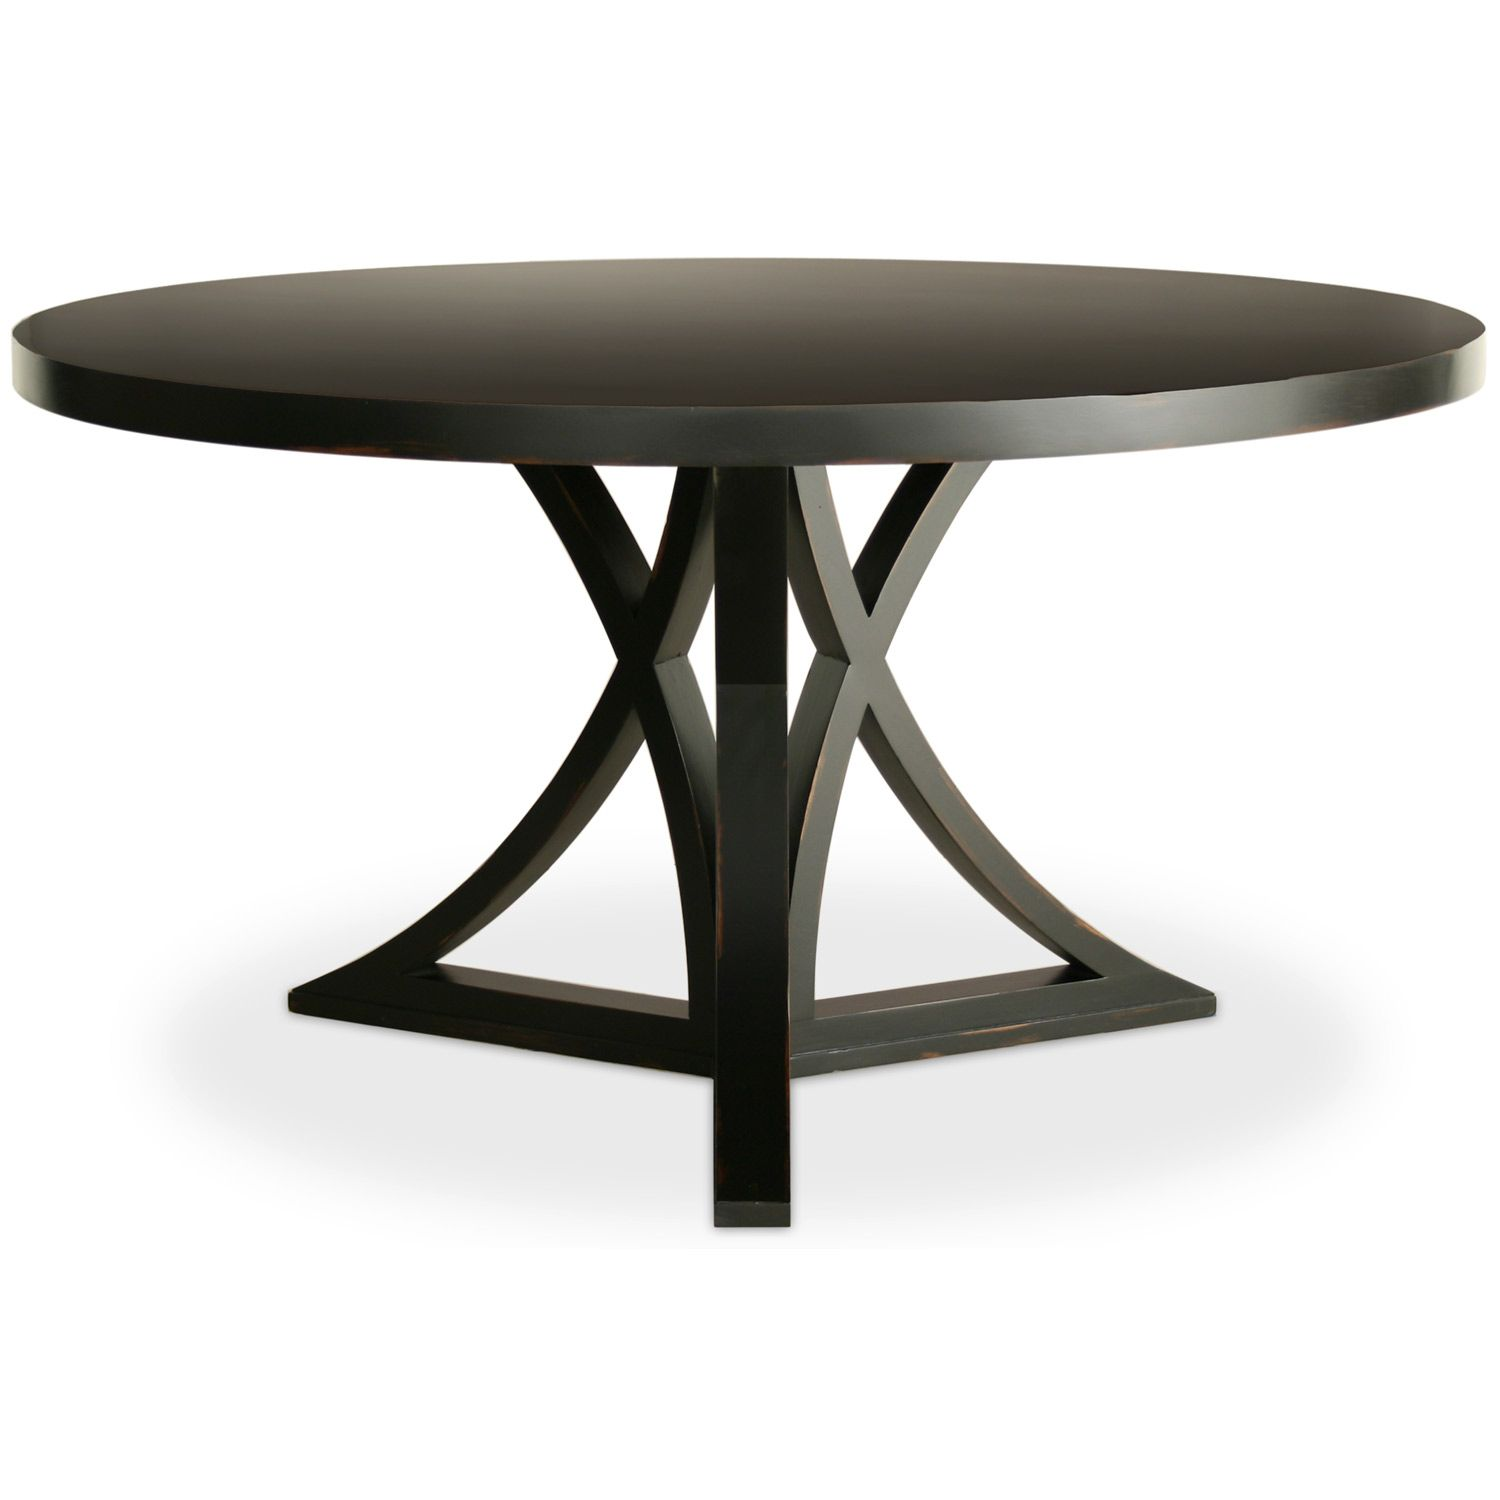 Round Dining Set With Leaf Sophiarounddiningtableround - Modern 60 inch round dining table